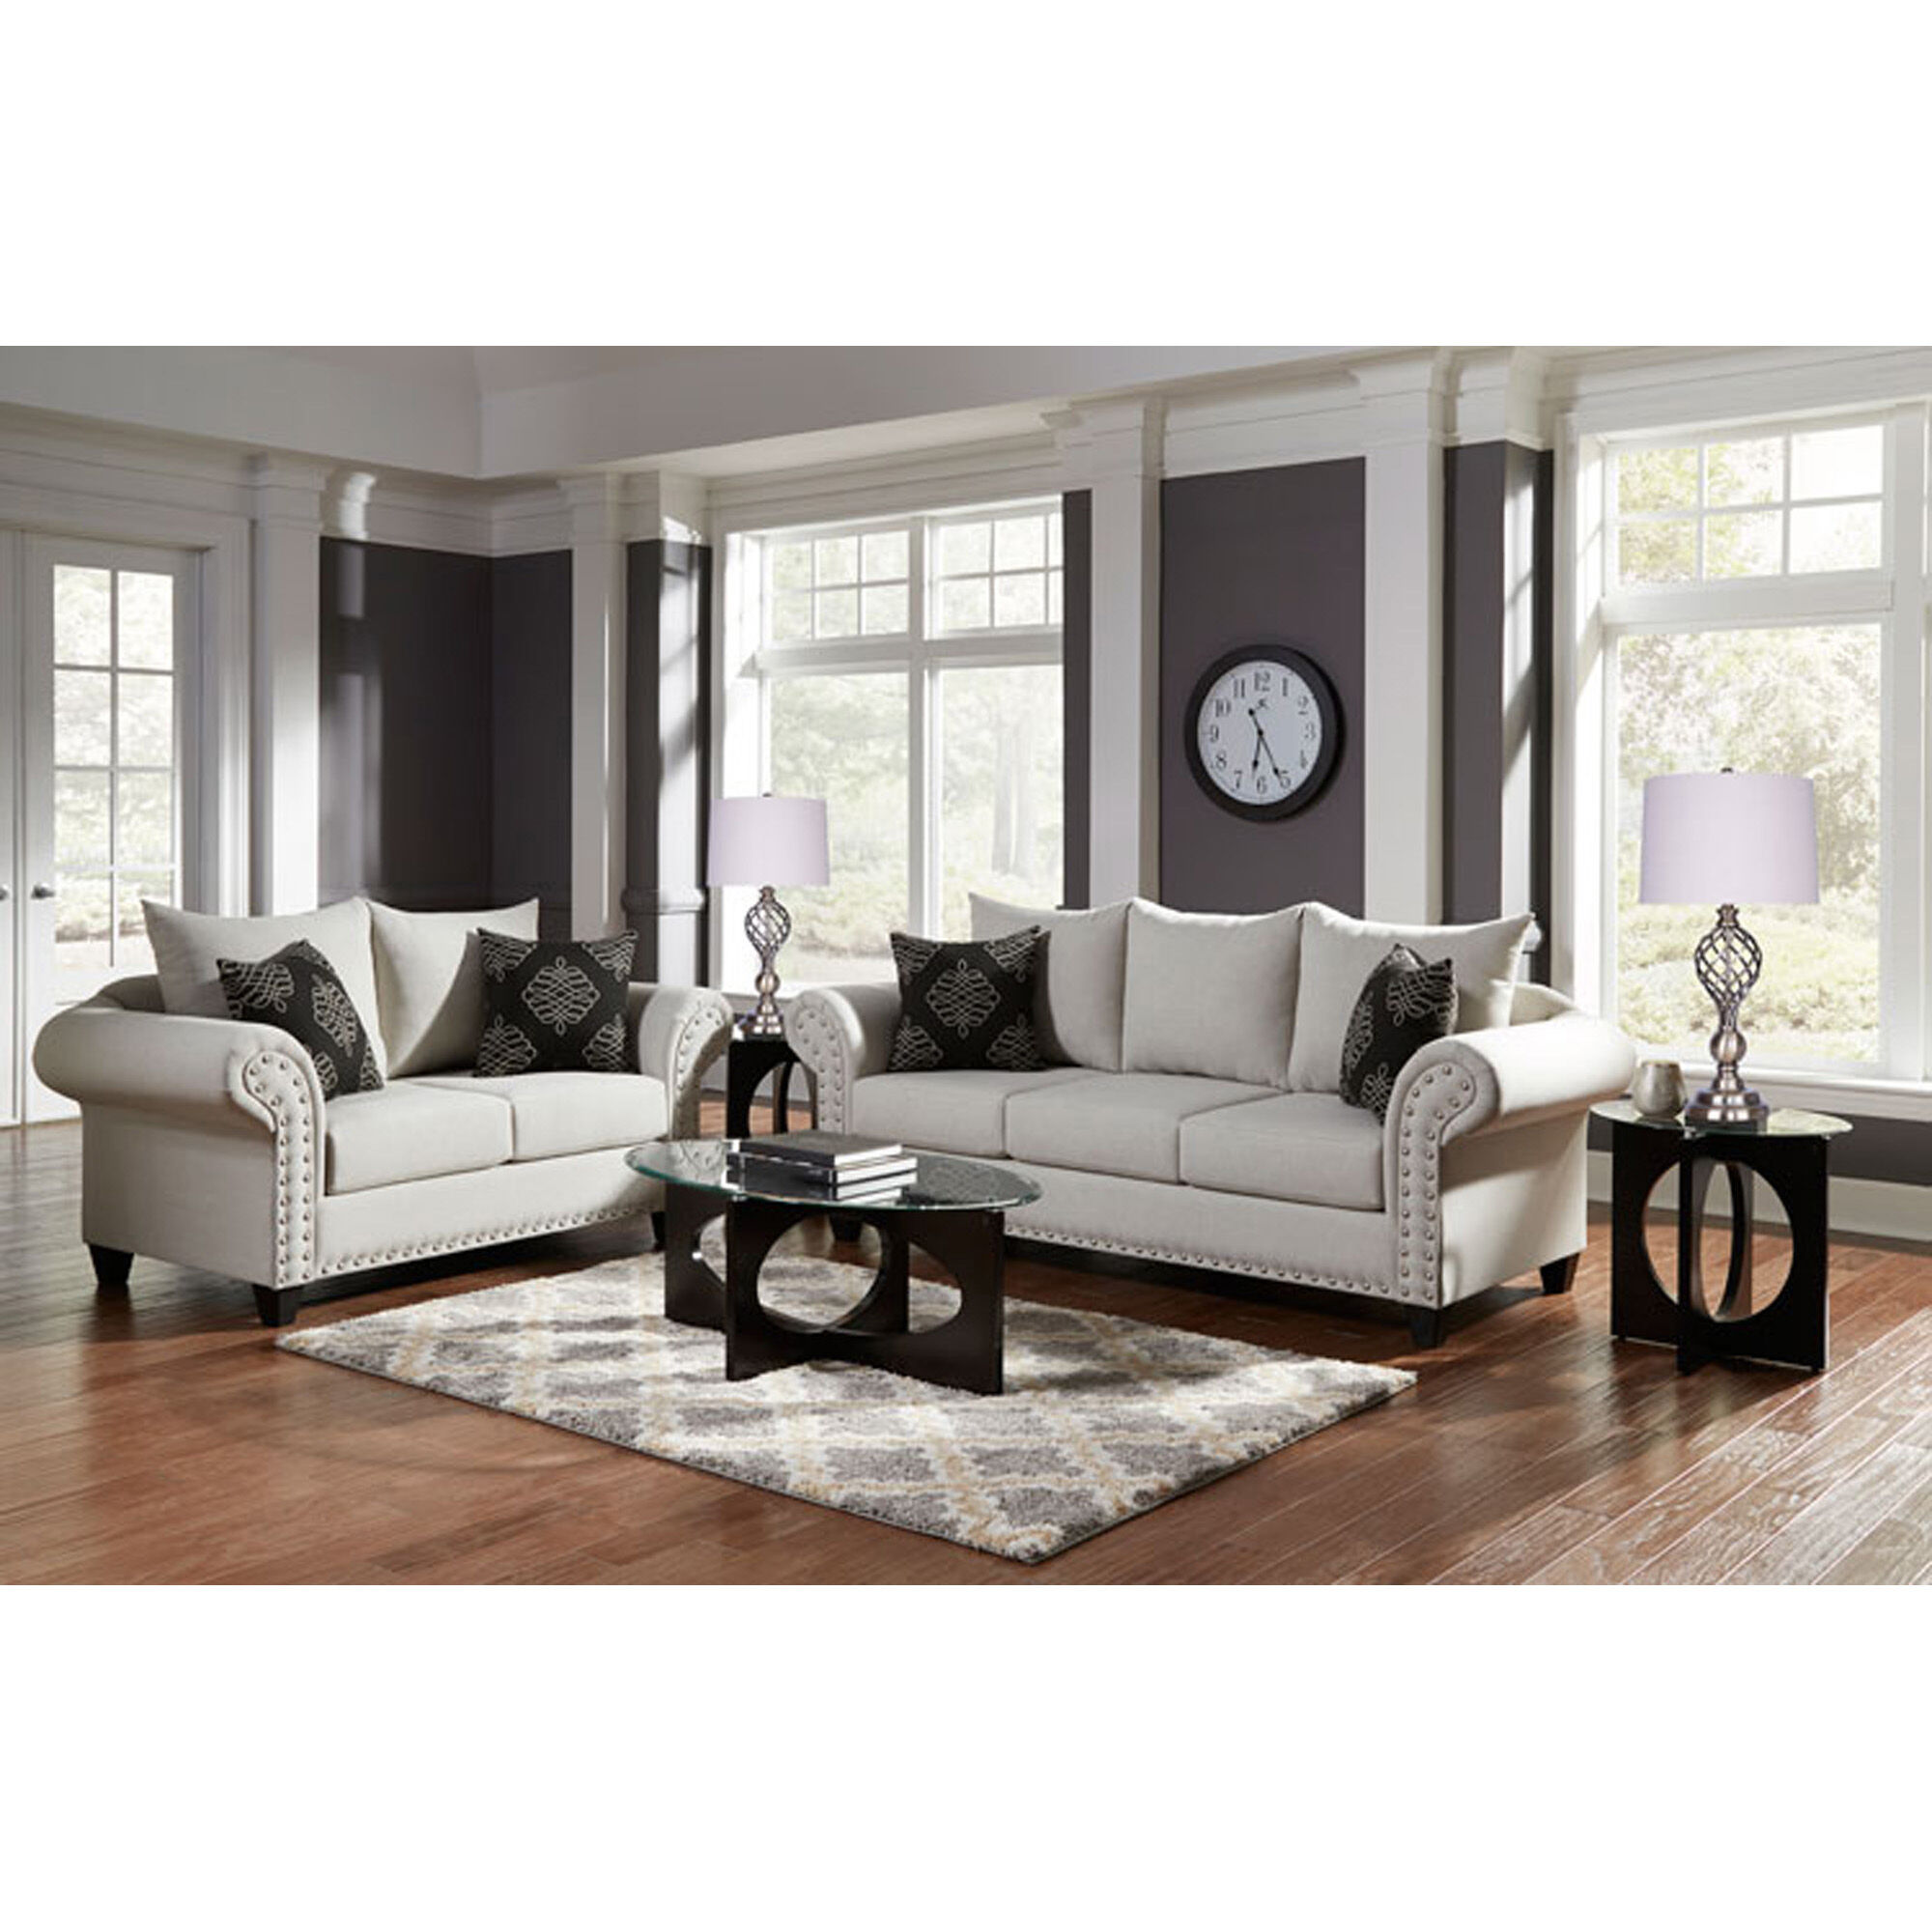 2 Piece Beverly Living Room Collection